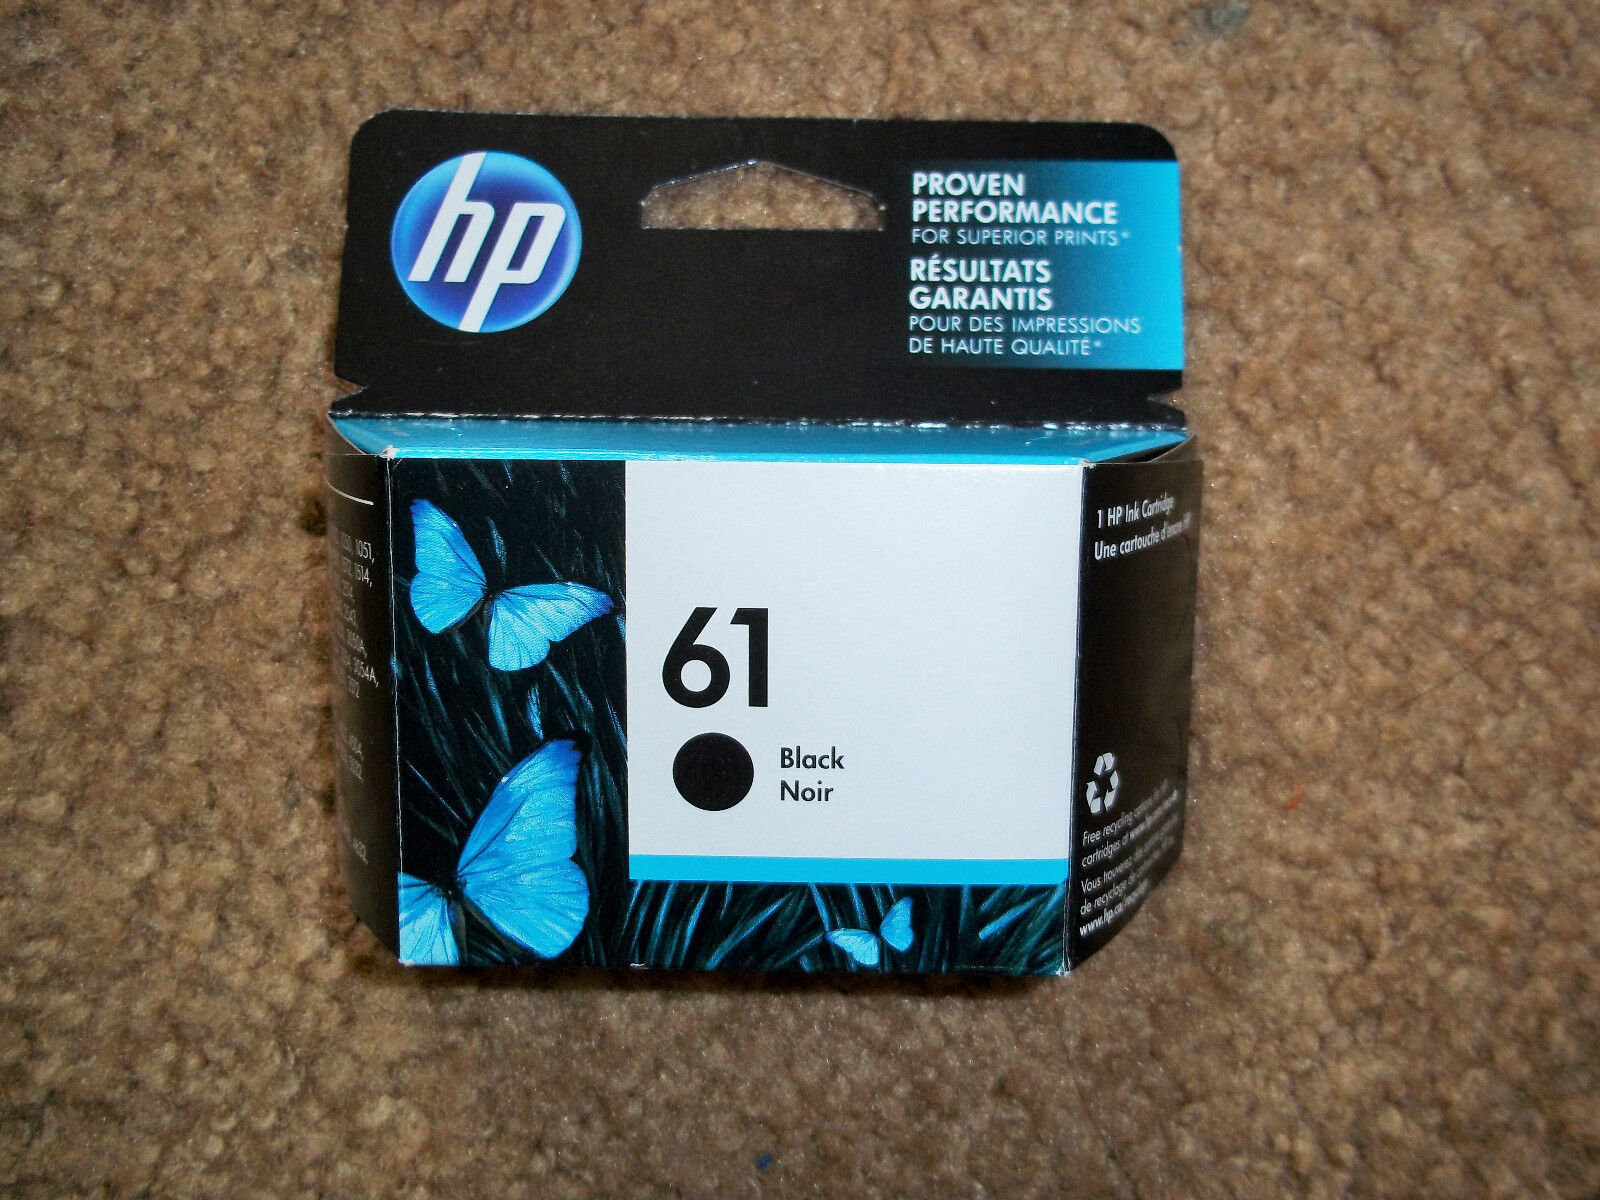 Купить HP - NEW HP GENUINE 61 CH561WN#140 Ink Cartridge BlacK,Exp June 2019 up, FAST SHIP